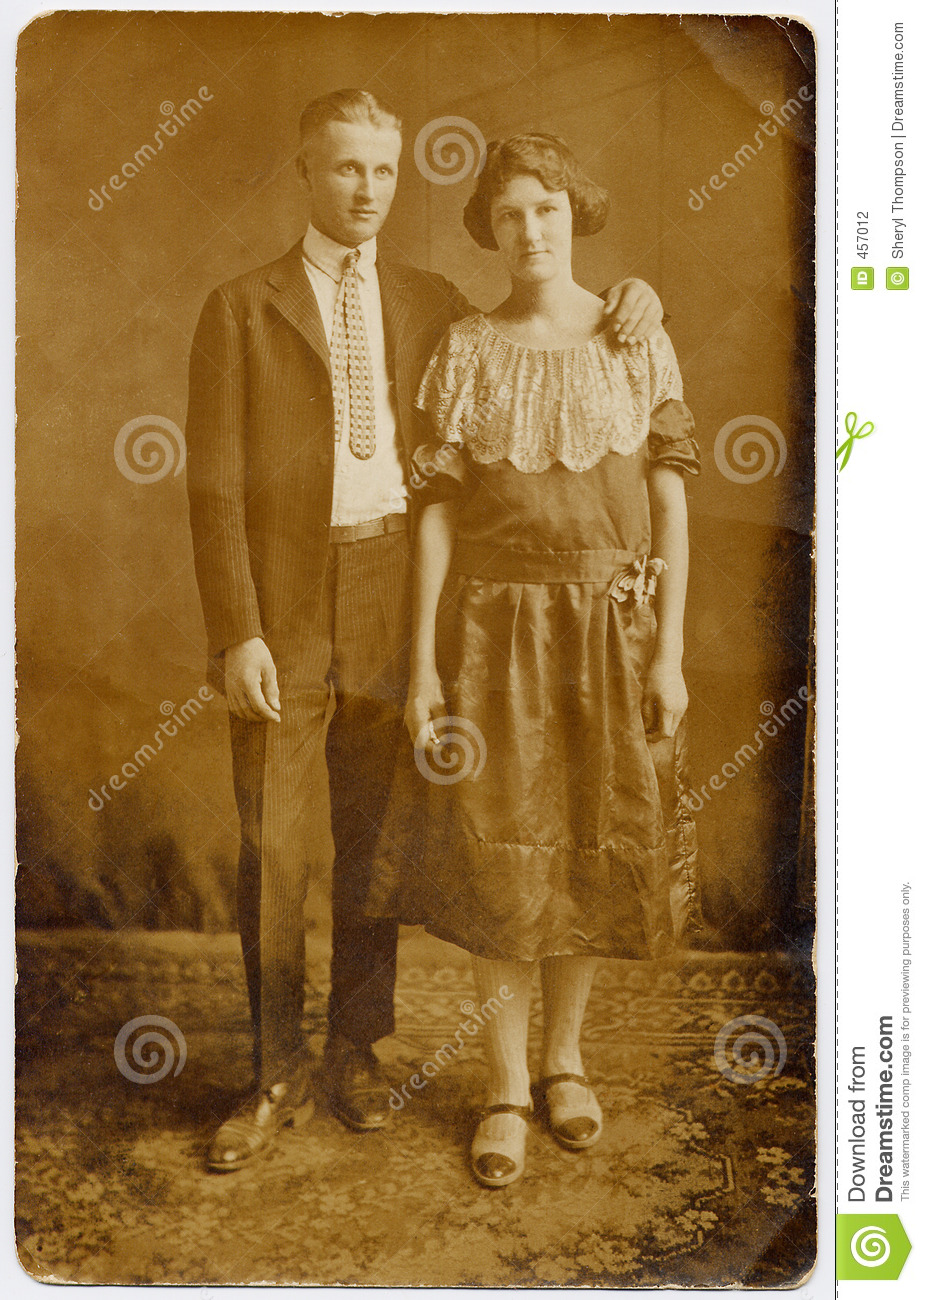 1920 S Couple Wedding Portrait Stock Photo Image Of